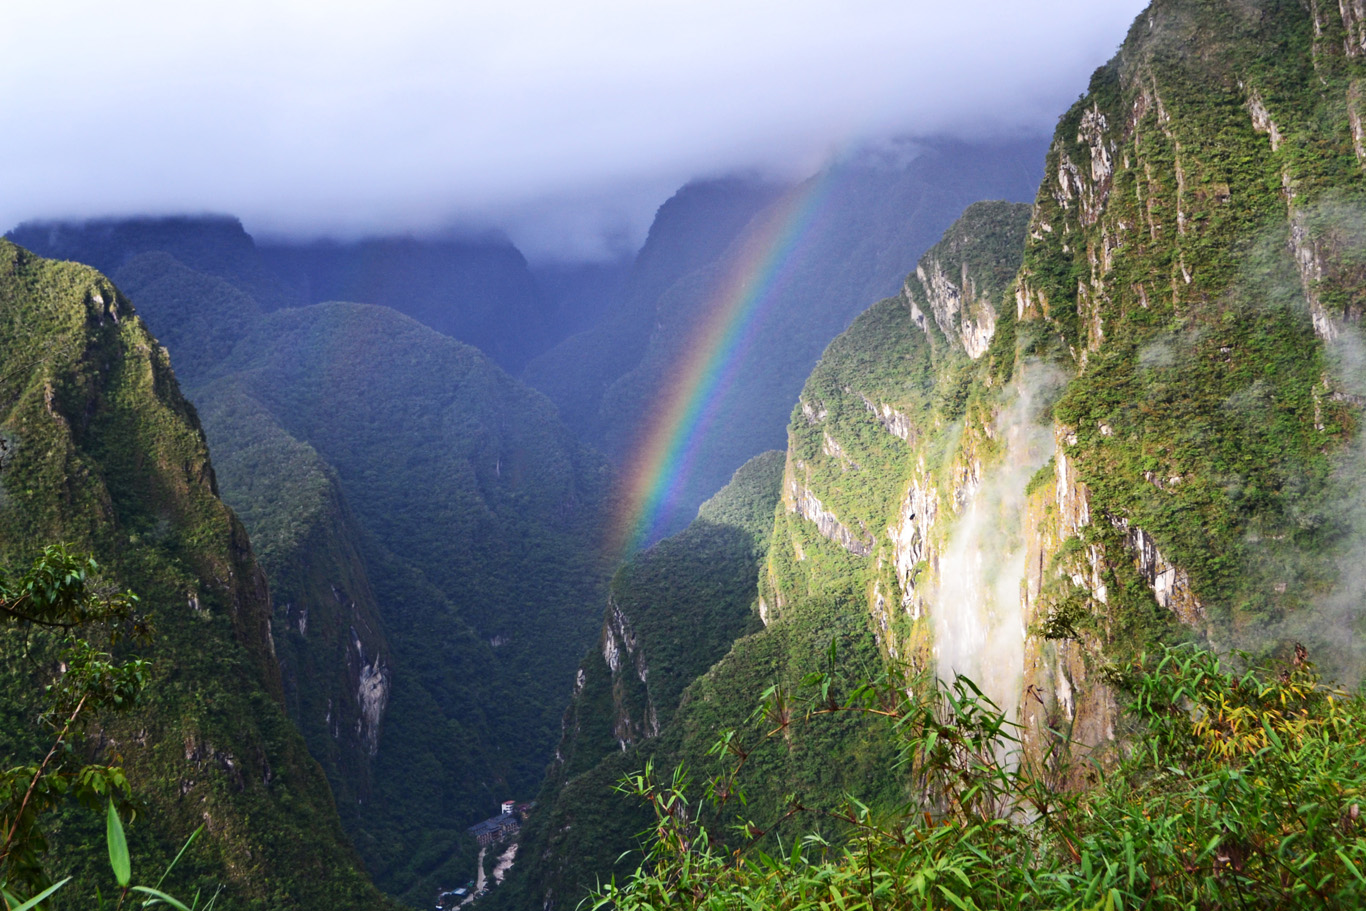 Rainbow at Machu Picchu, down in the valley - Aguas Calientes